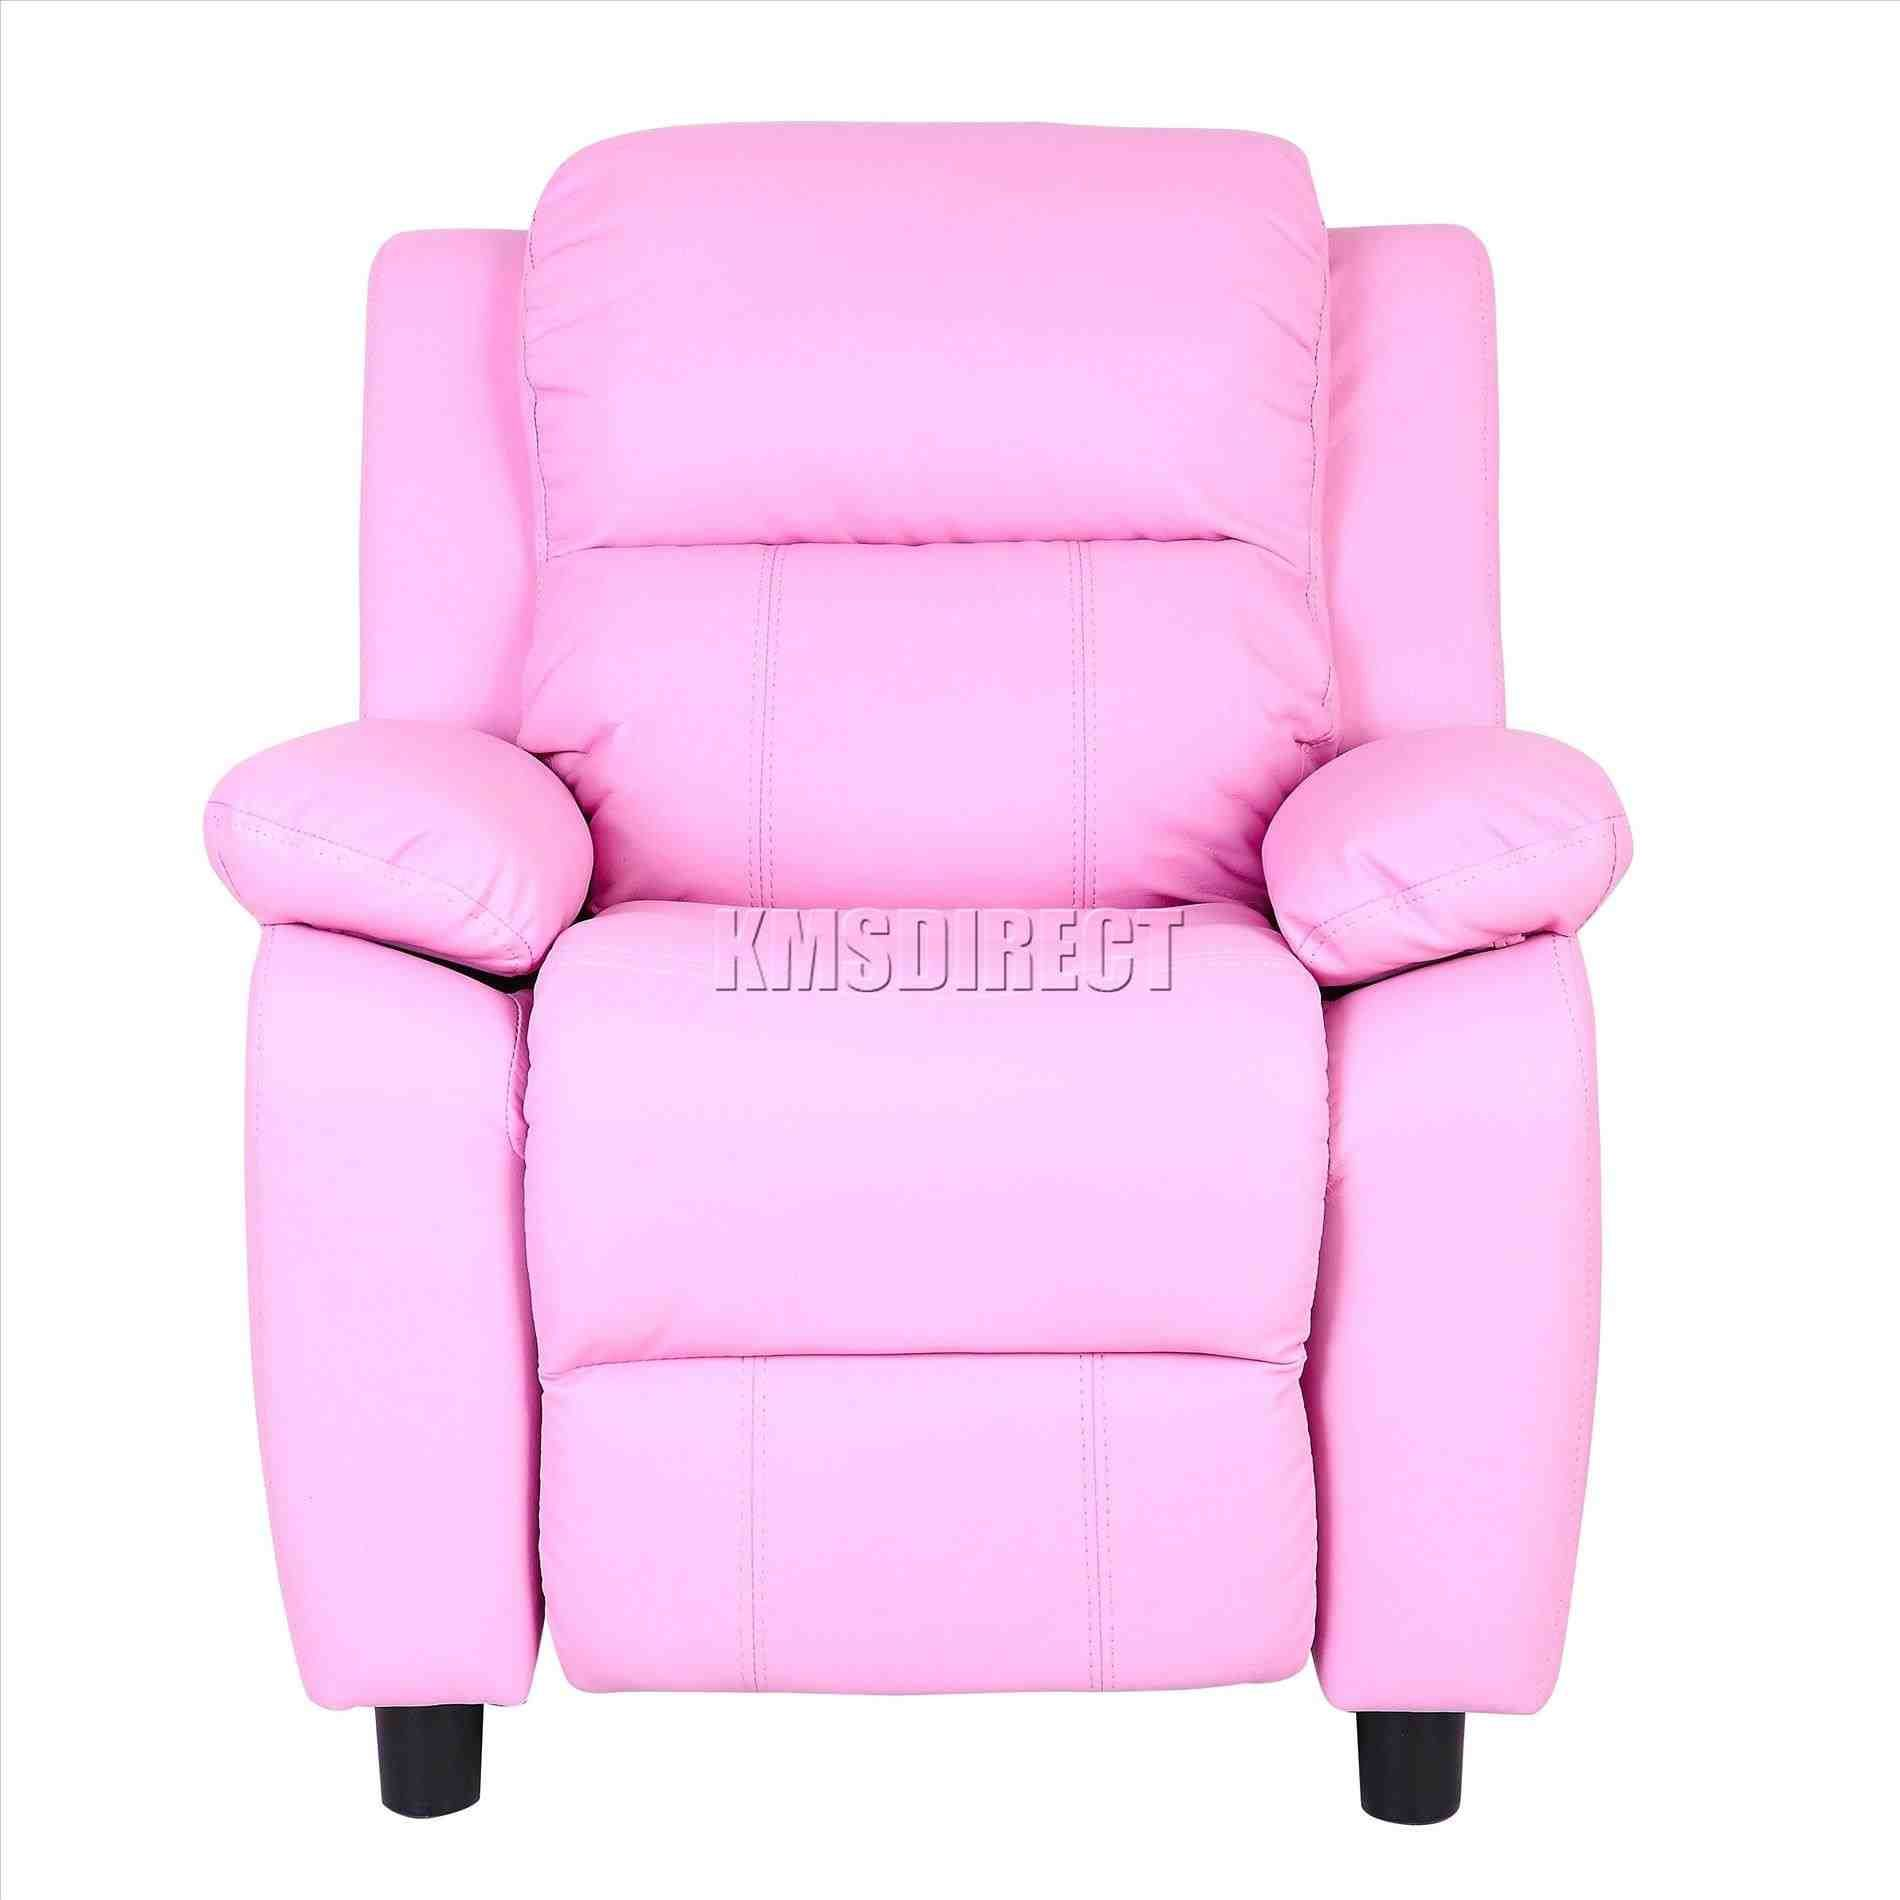 Cheap Recliners Big Lots Full Size Of Loveseat Oversized